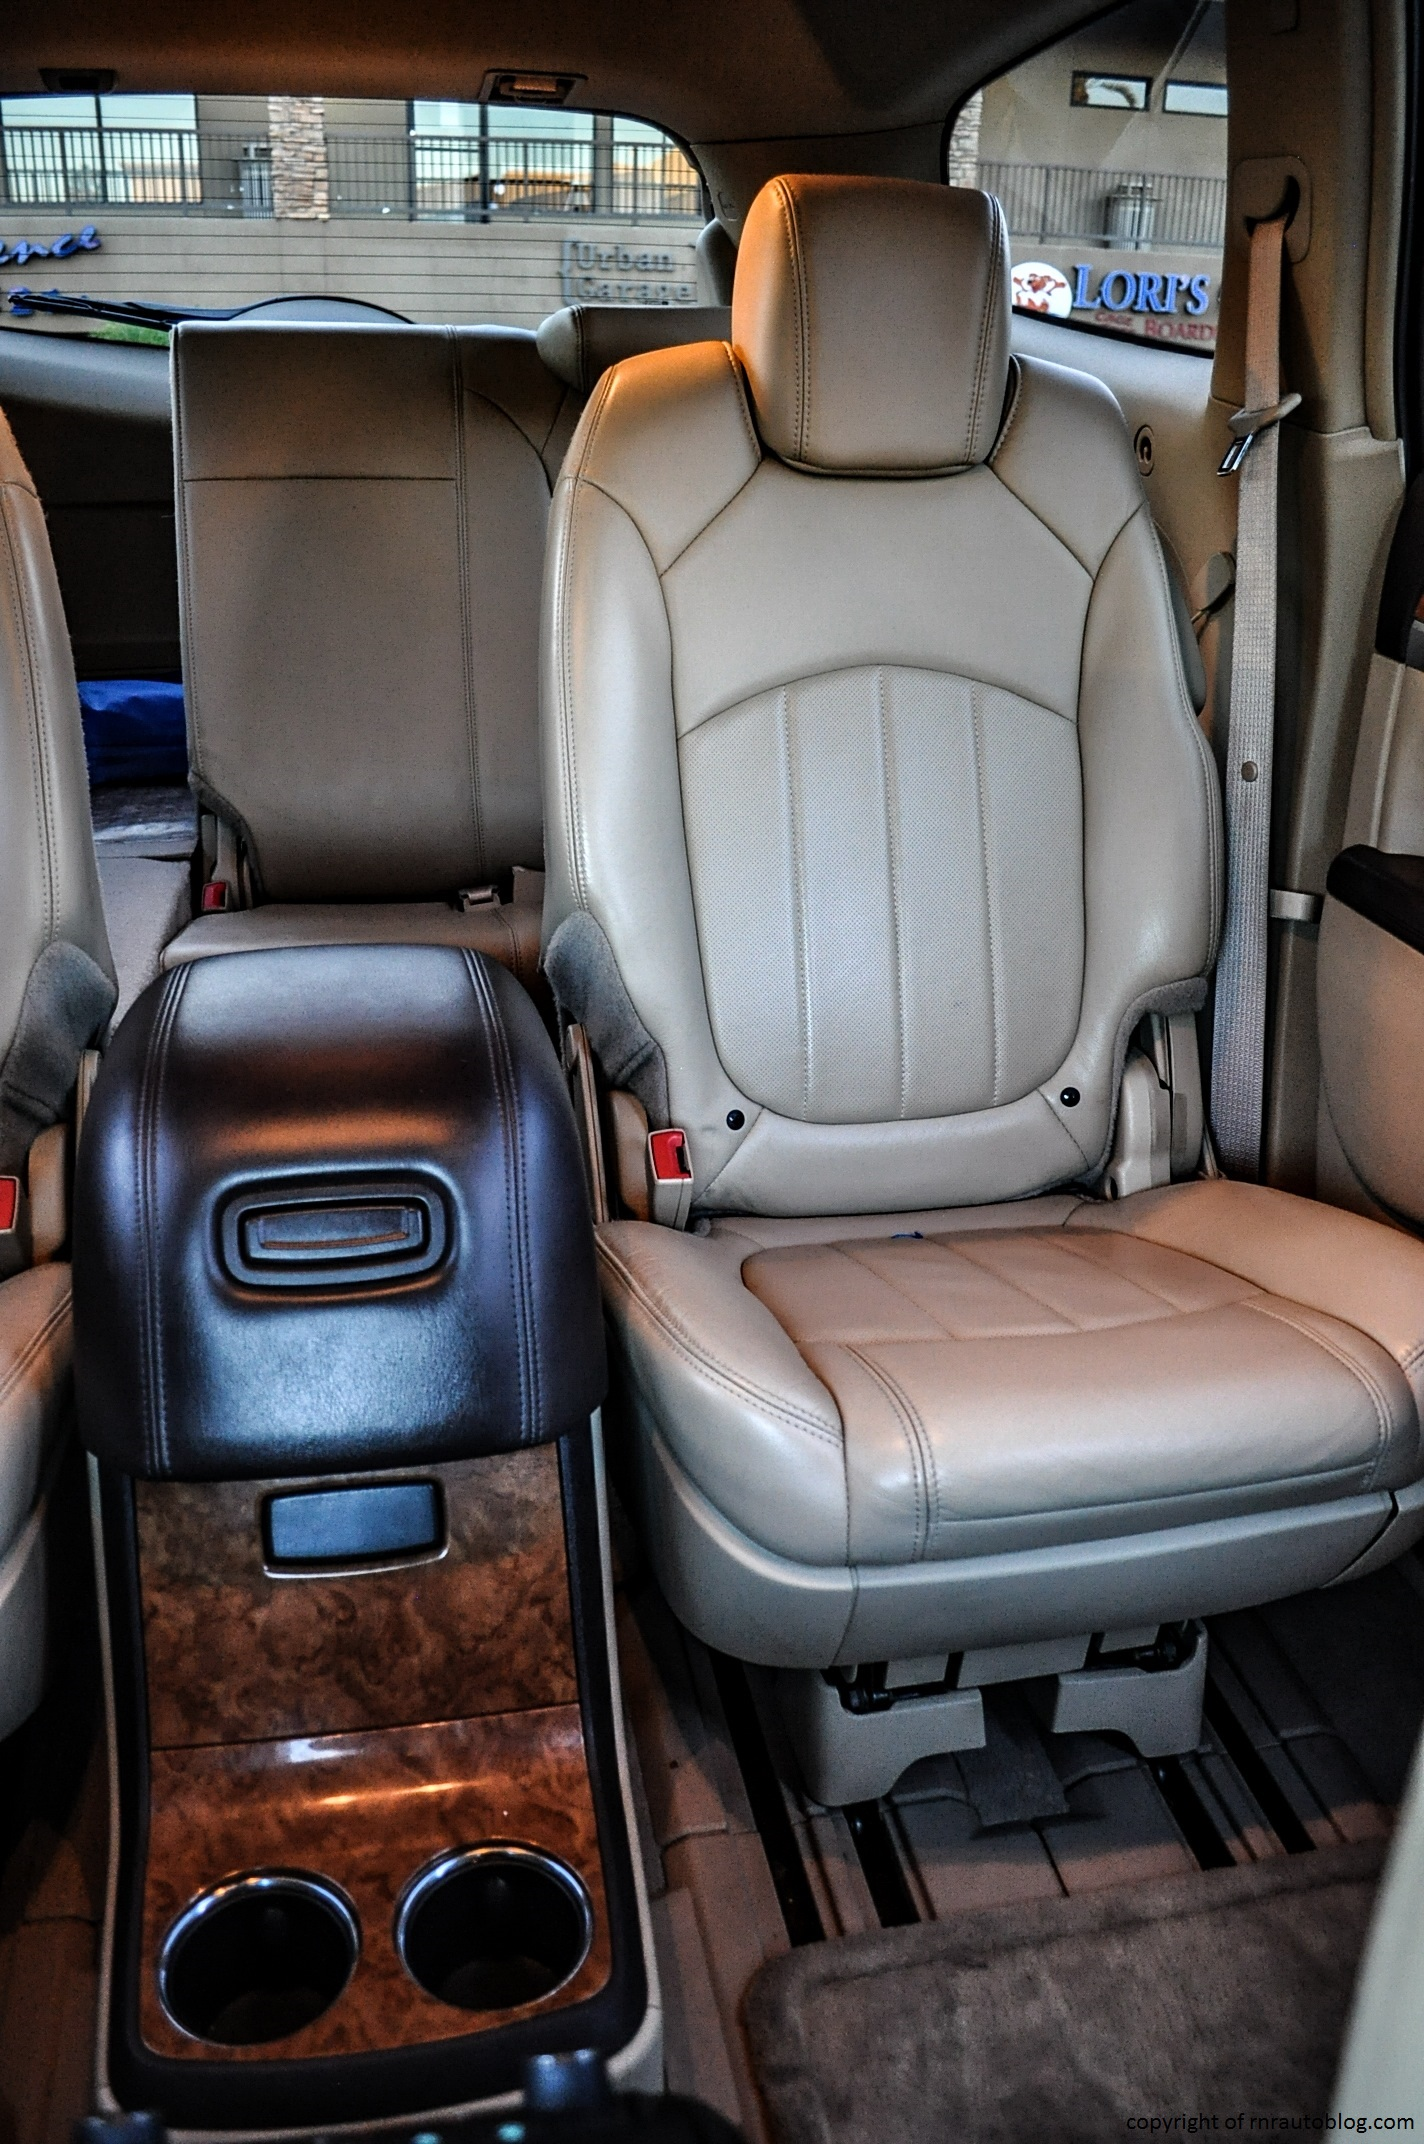 Buick Enclave Rear Center Console >> 2008 Buick Enclave CXL Review | RNR Automotive Blog